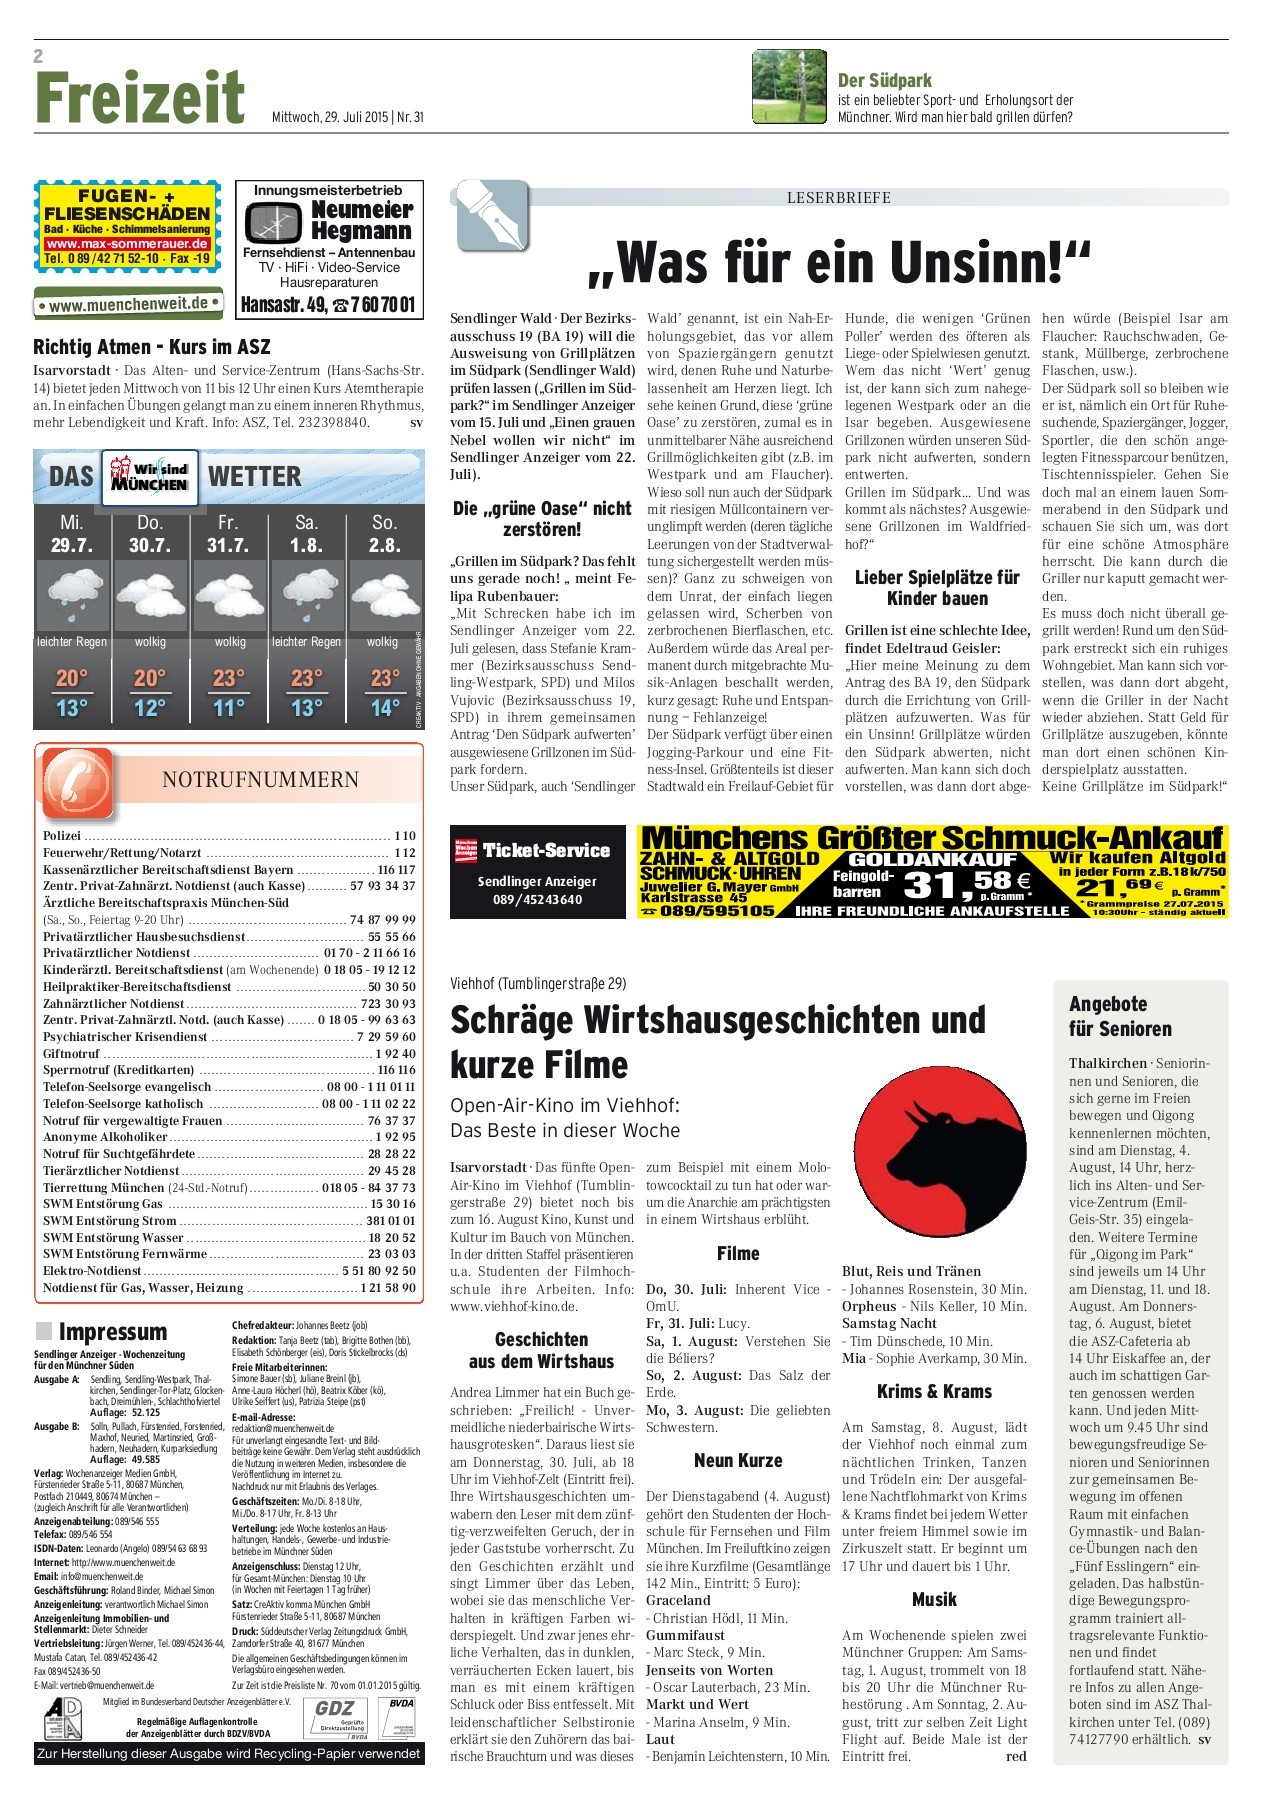 Waschmaschine Miele W1 2 J Alt In Frankfurt Sendlinger Anzeiger Kw 31 2015 Pages 1 40 Text Version Pubhtml5